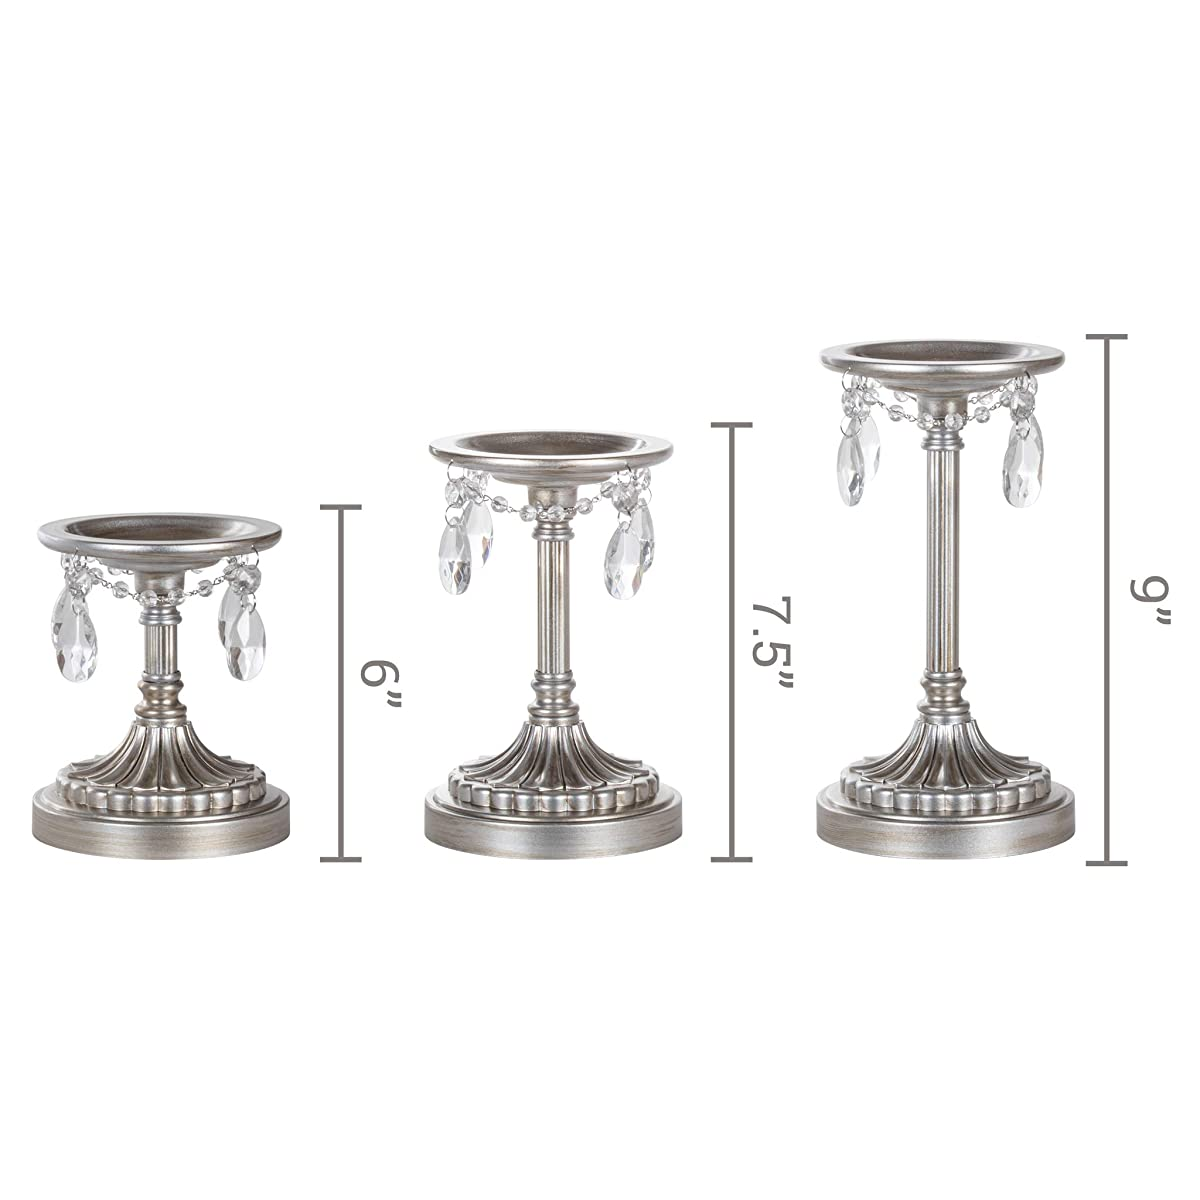 Amalfi Décor Victoria 3-Piece Antique Silver Pillar Candle Holder Set, Crystal-Draped Metal Candlestick Accent Stand